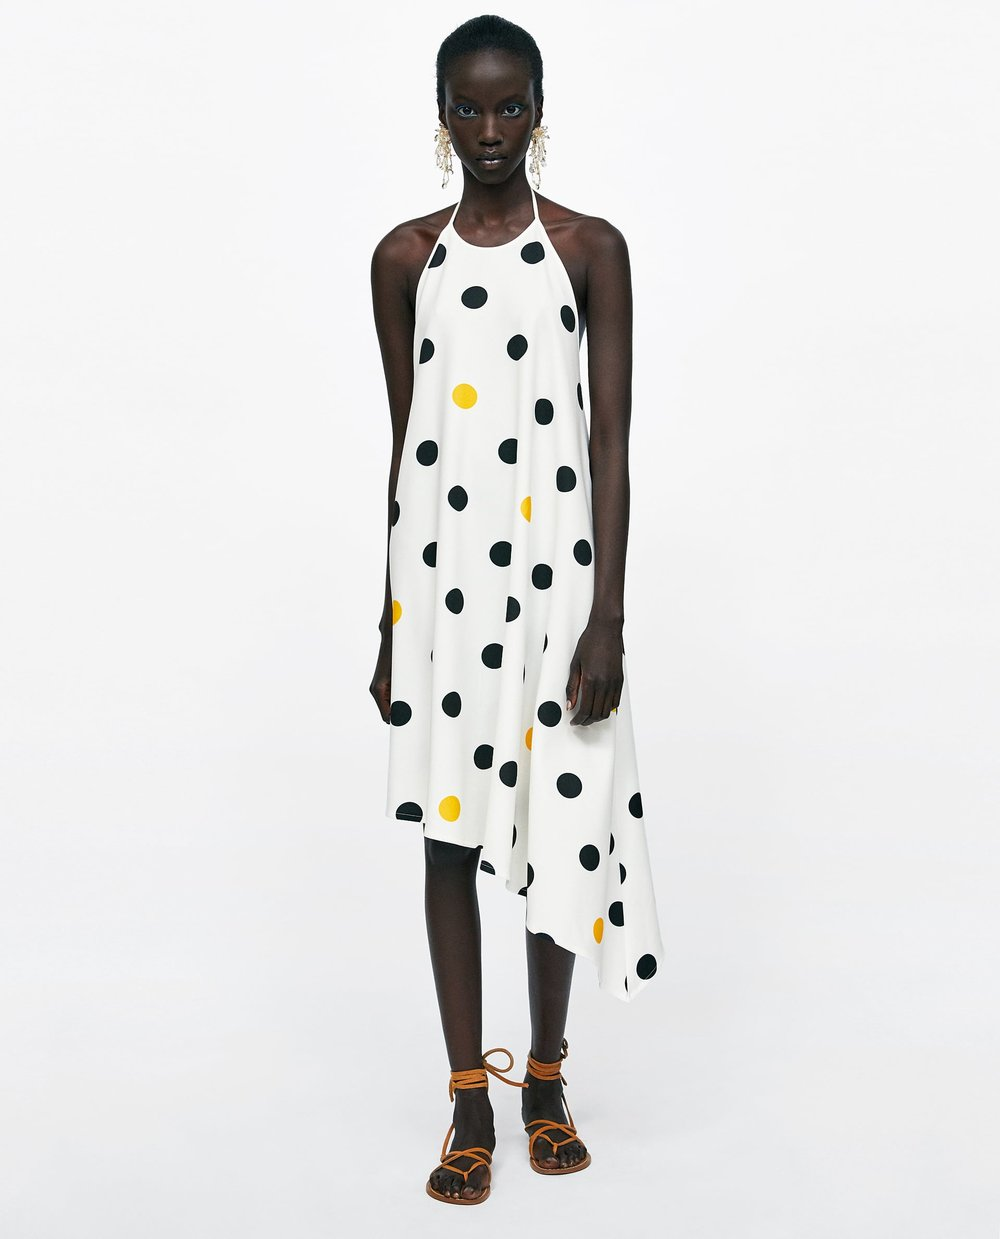 Polka Dot Halterneck Dress - Priced at £25.99, available at Zara